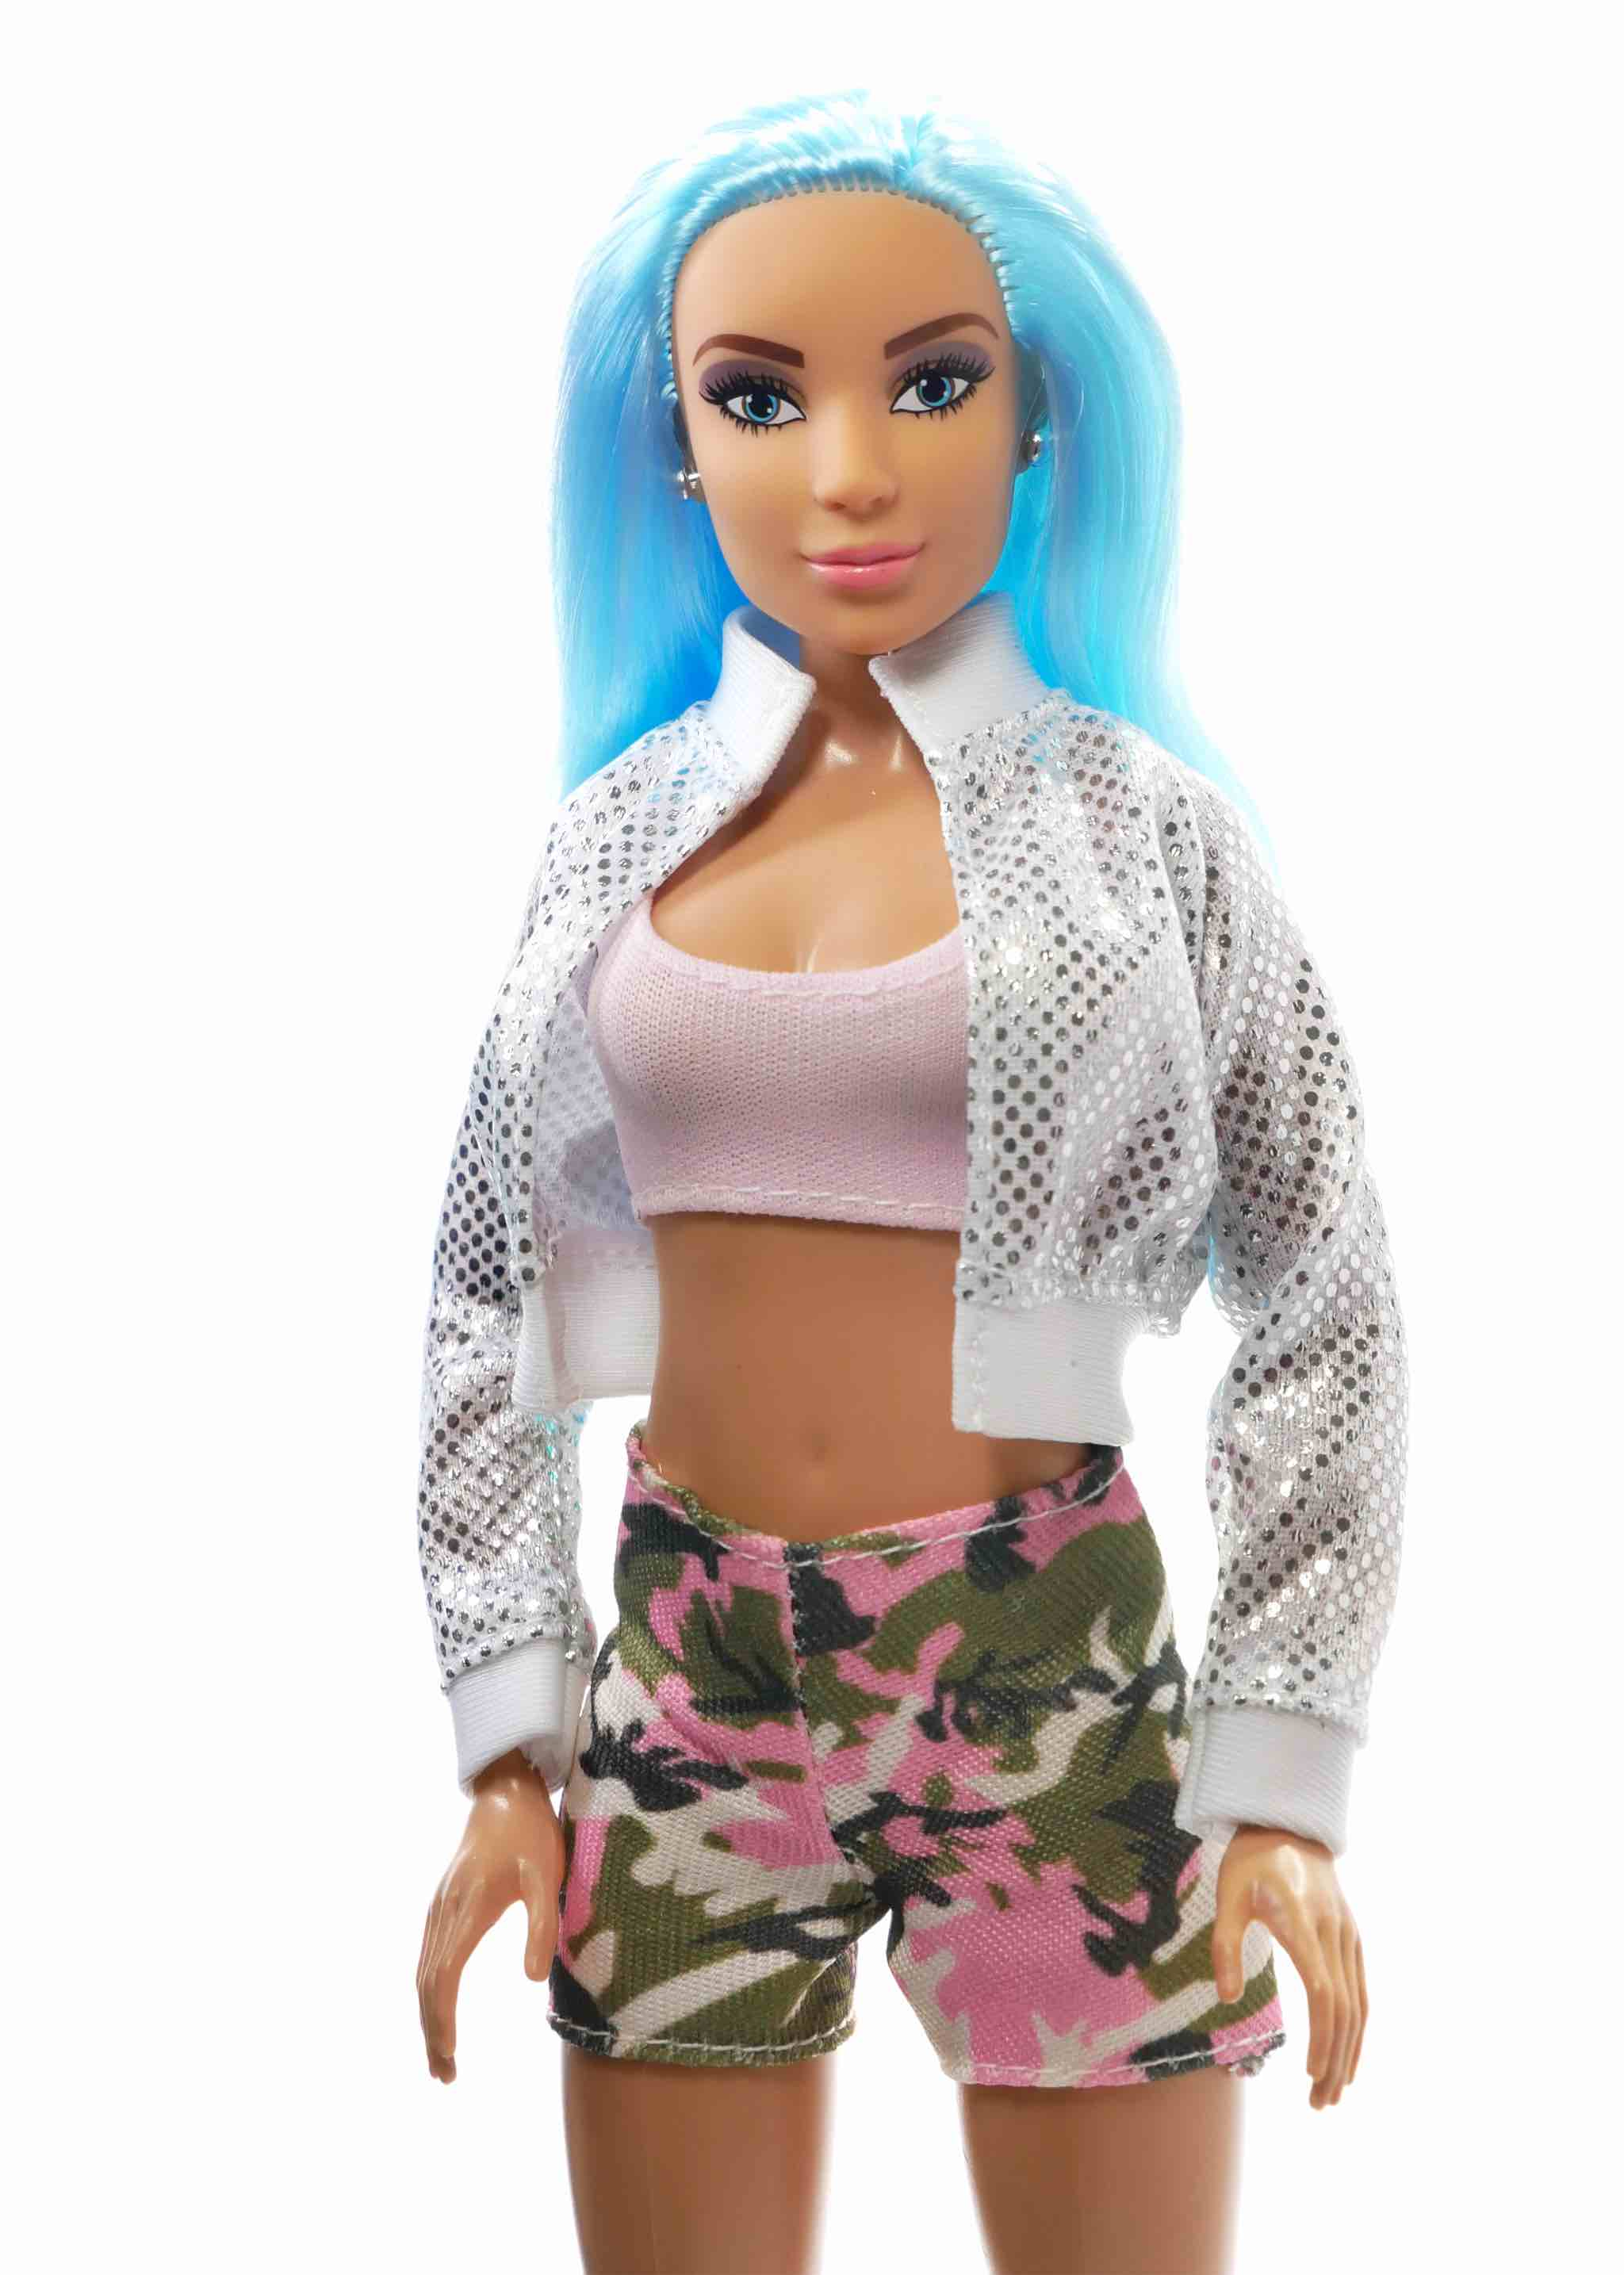 up close blue haired fashion doll wearing silver jacket pink top and camo shorts